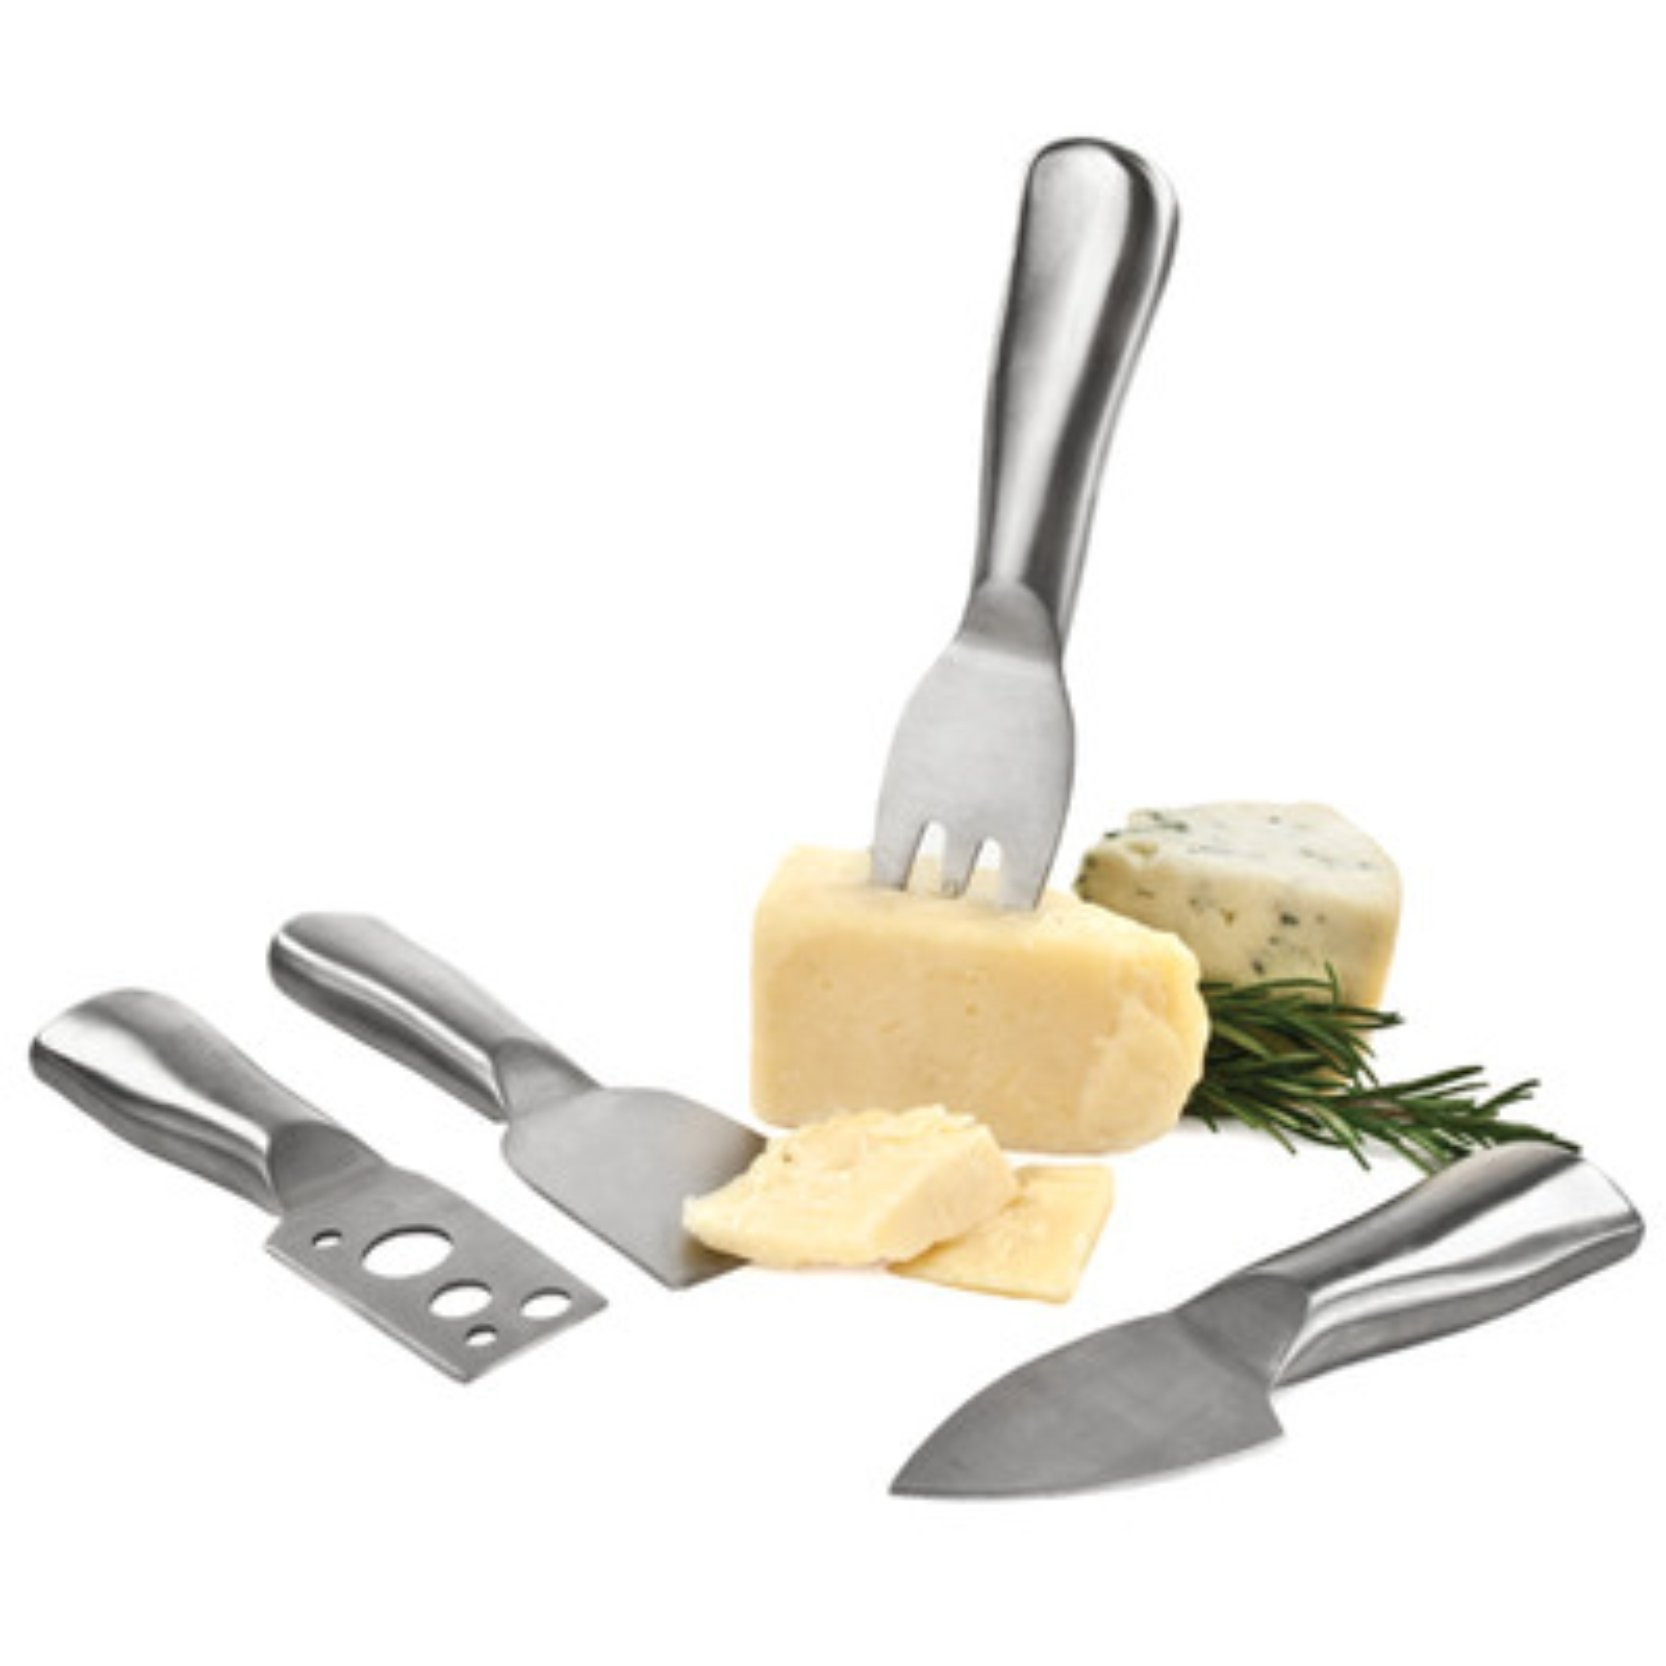 Cheese Utensils Stainless Steel Set of 4